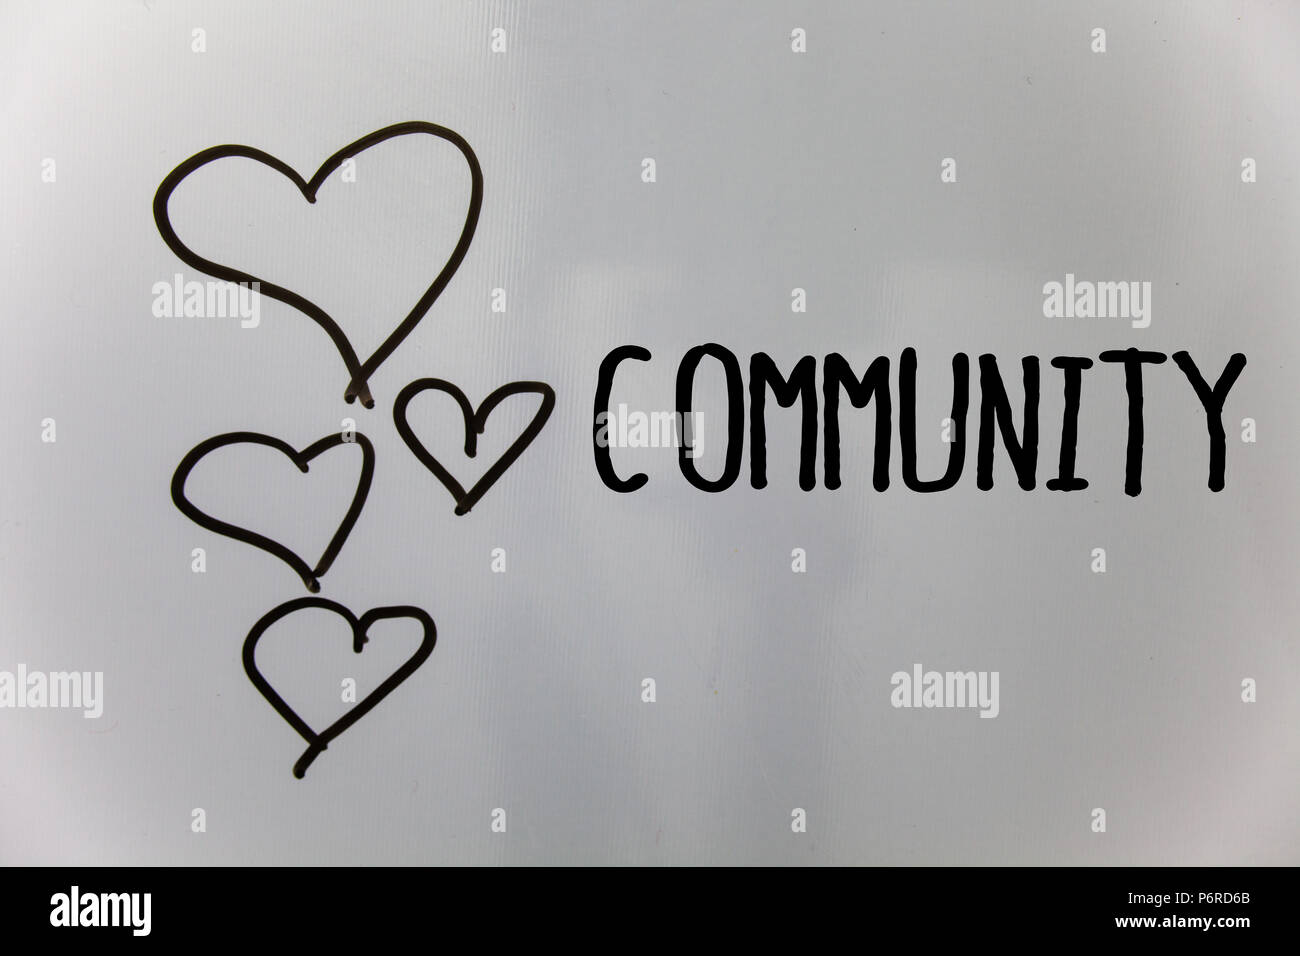 Word writing text Community. Business concept for Neighborhood Association State Affiliation Alliance Unity Group Hearts white background ideas messag - Stock Image